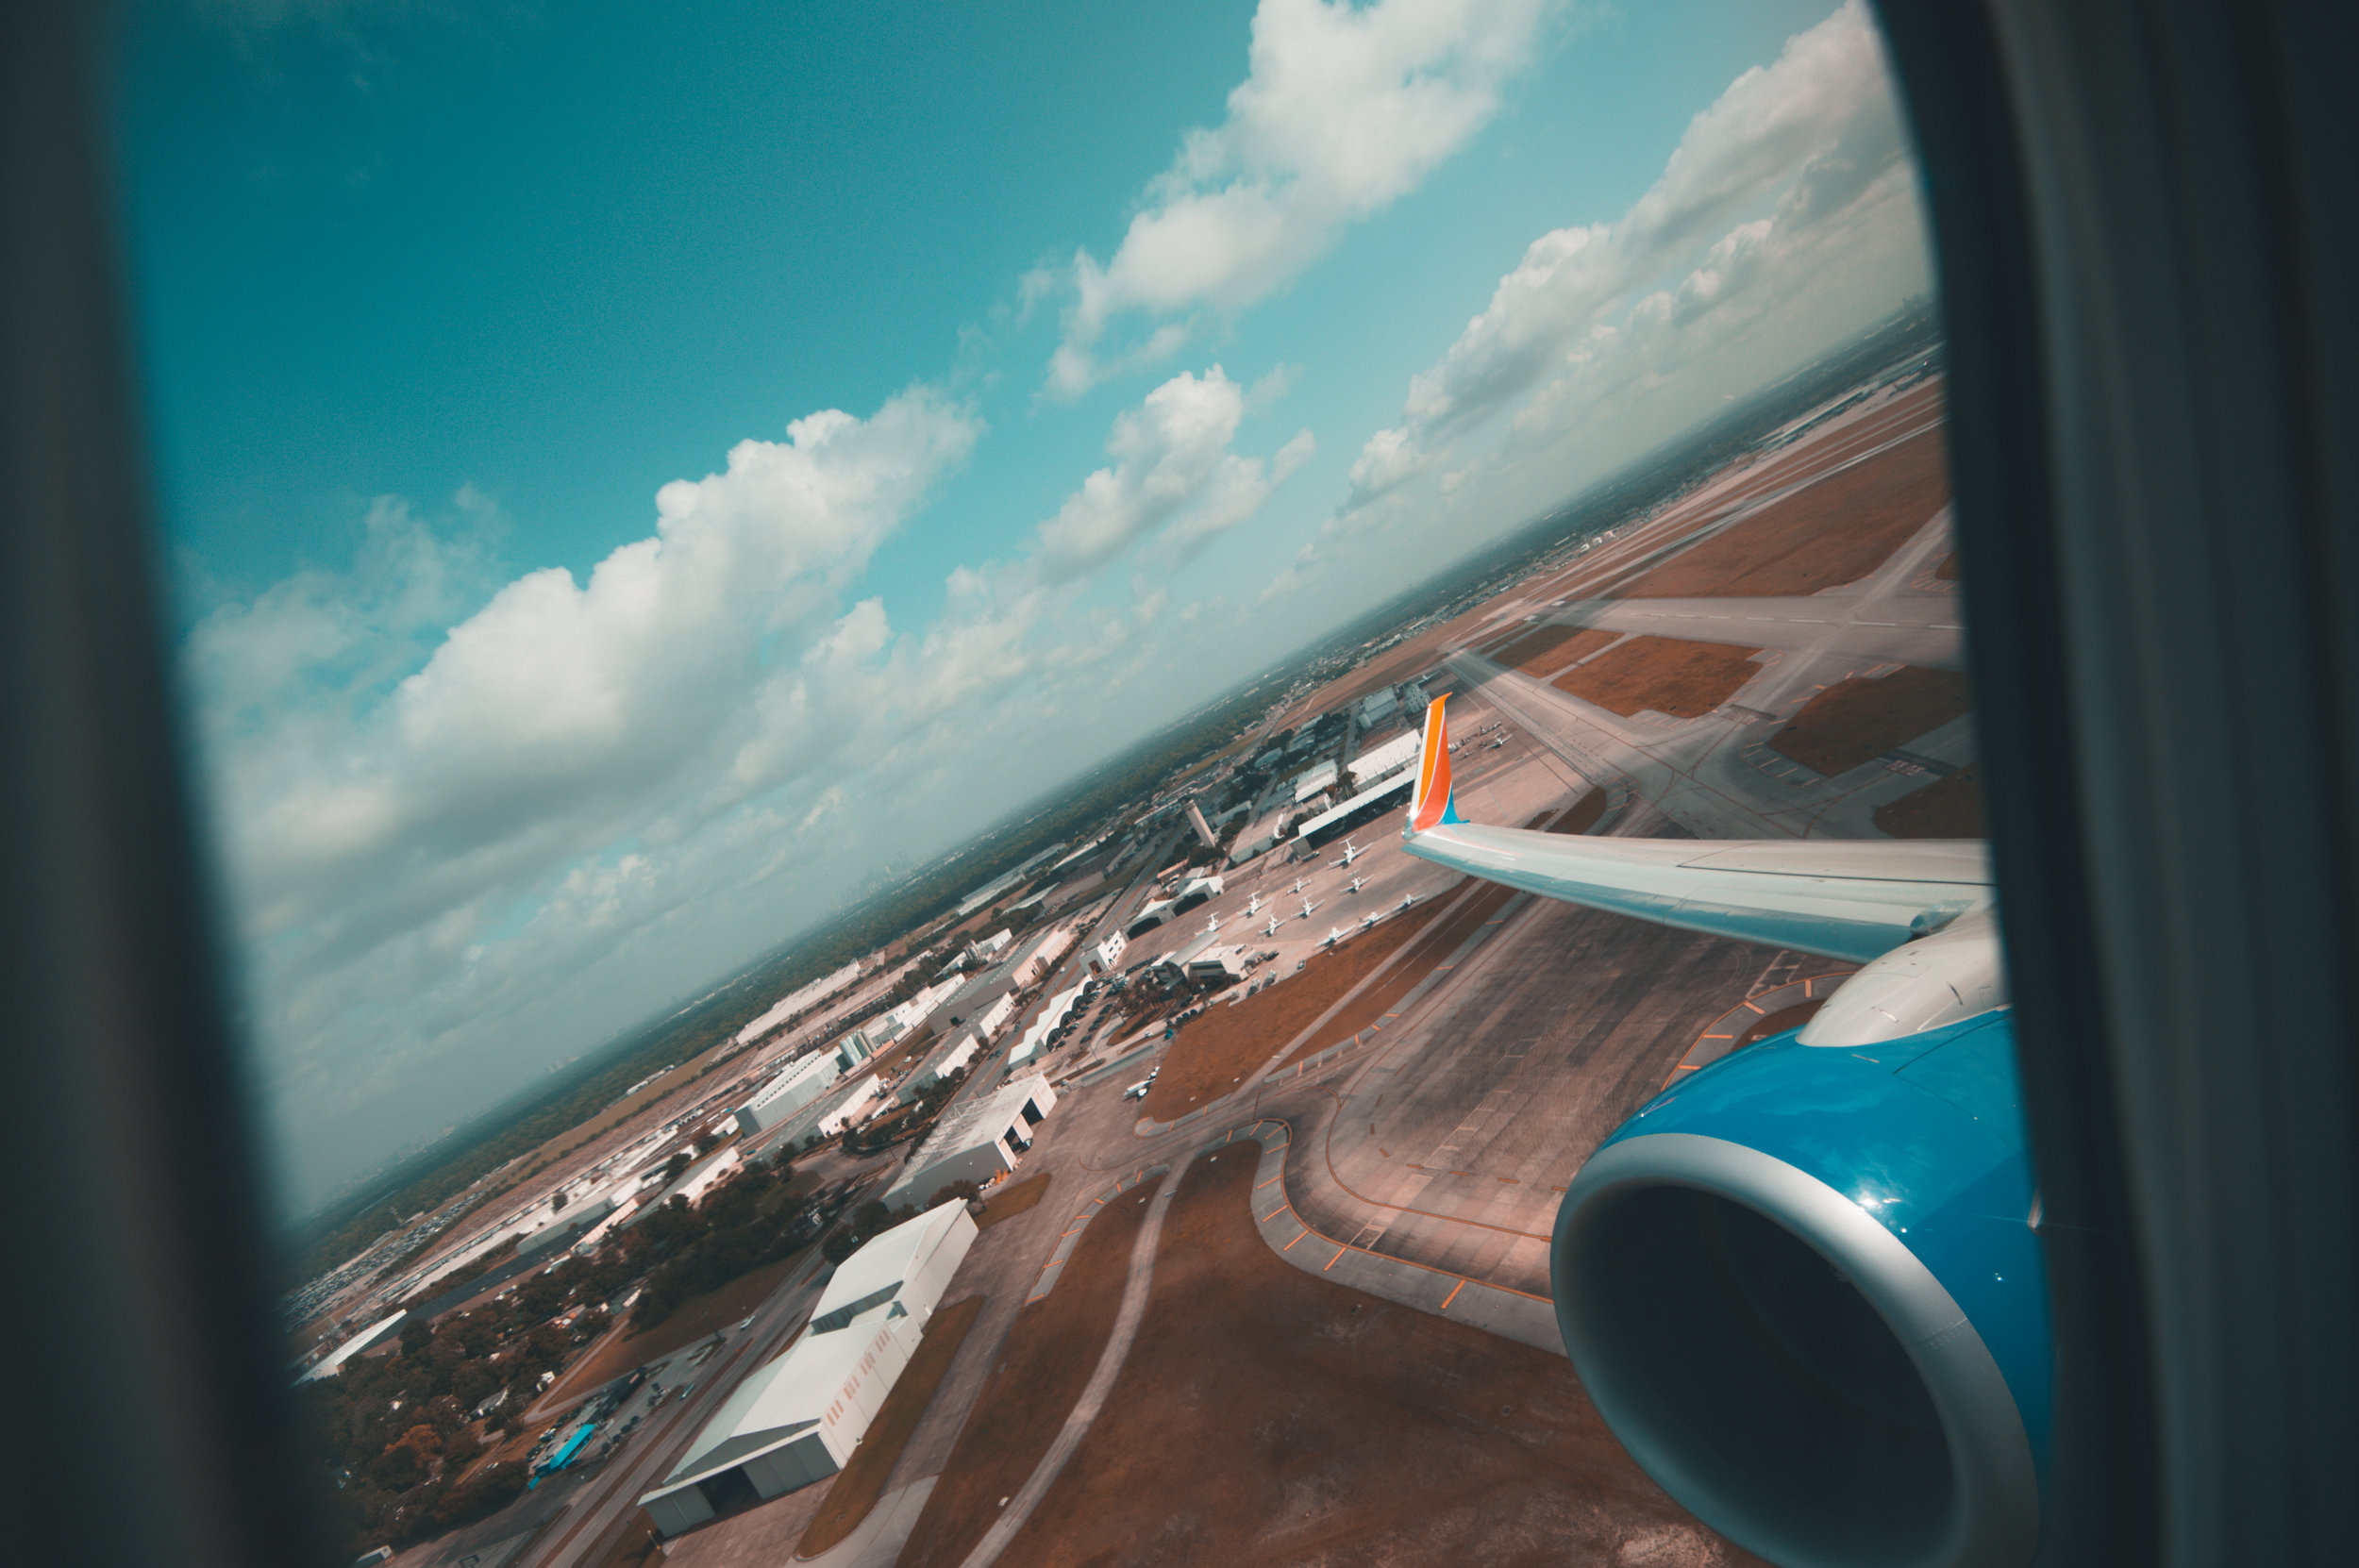 I took this shot on my flight home from Houston, I had flown home for a few days to go to the funeral of a friend who had passed away. I had to say goodbye to someone who was very influential to me and within all of that I realized home isn't really home anymore. The whole trip is still so weird to me.